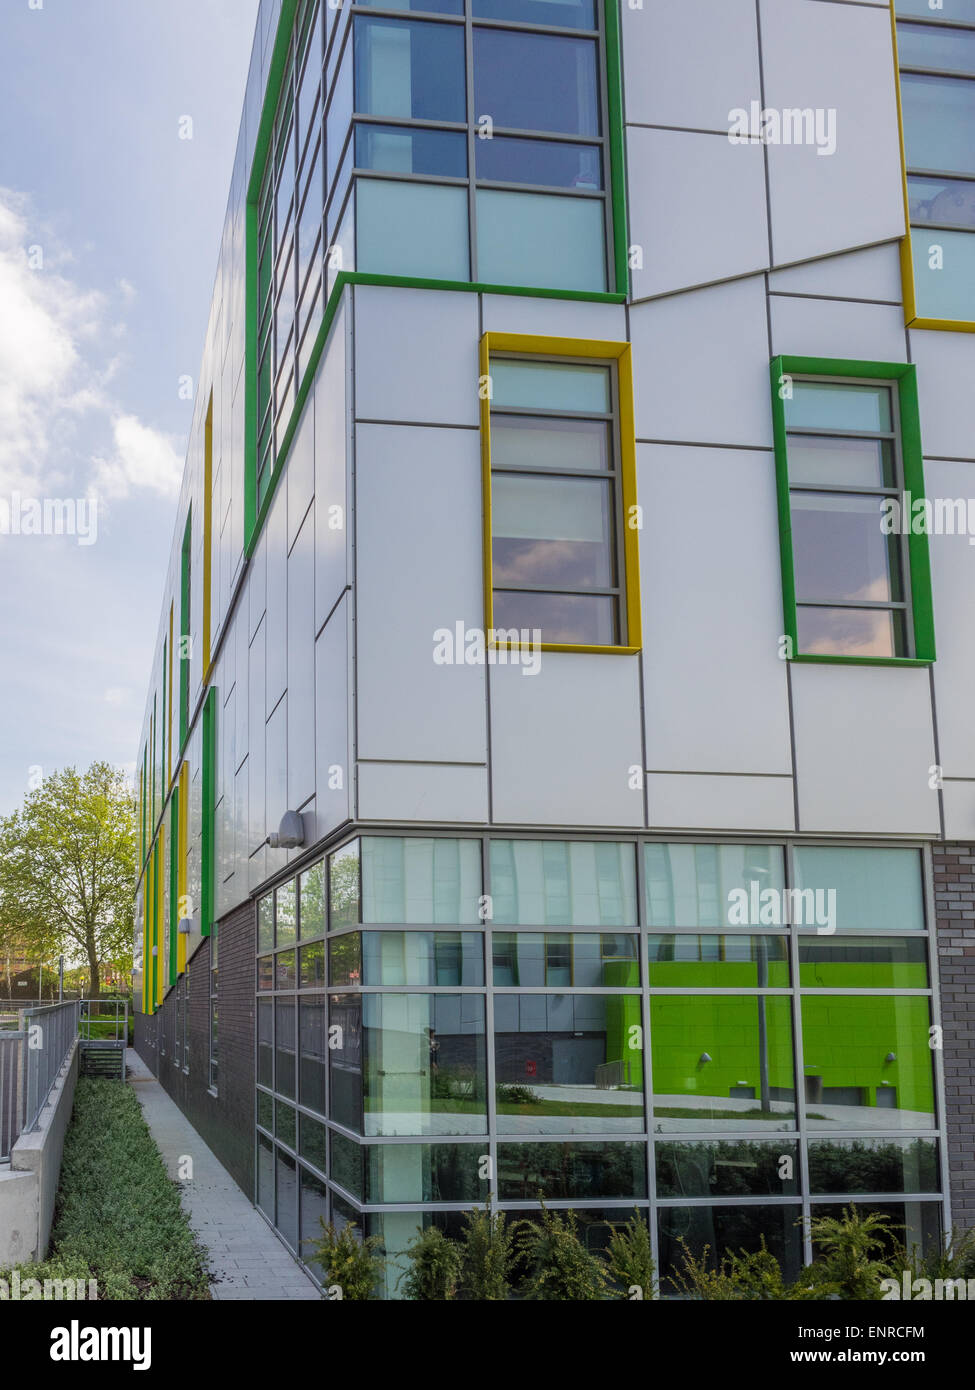 South East College Thurrock Grays Campus Further Higher Education Essex Thurrock on Thames London England Stock Photo